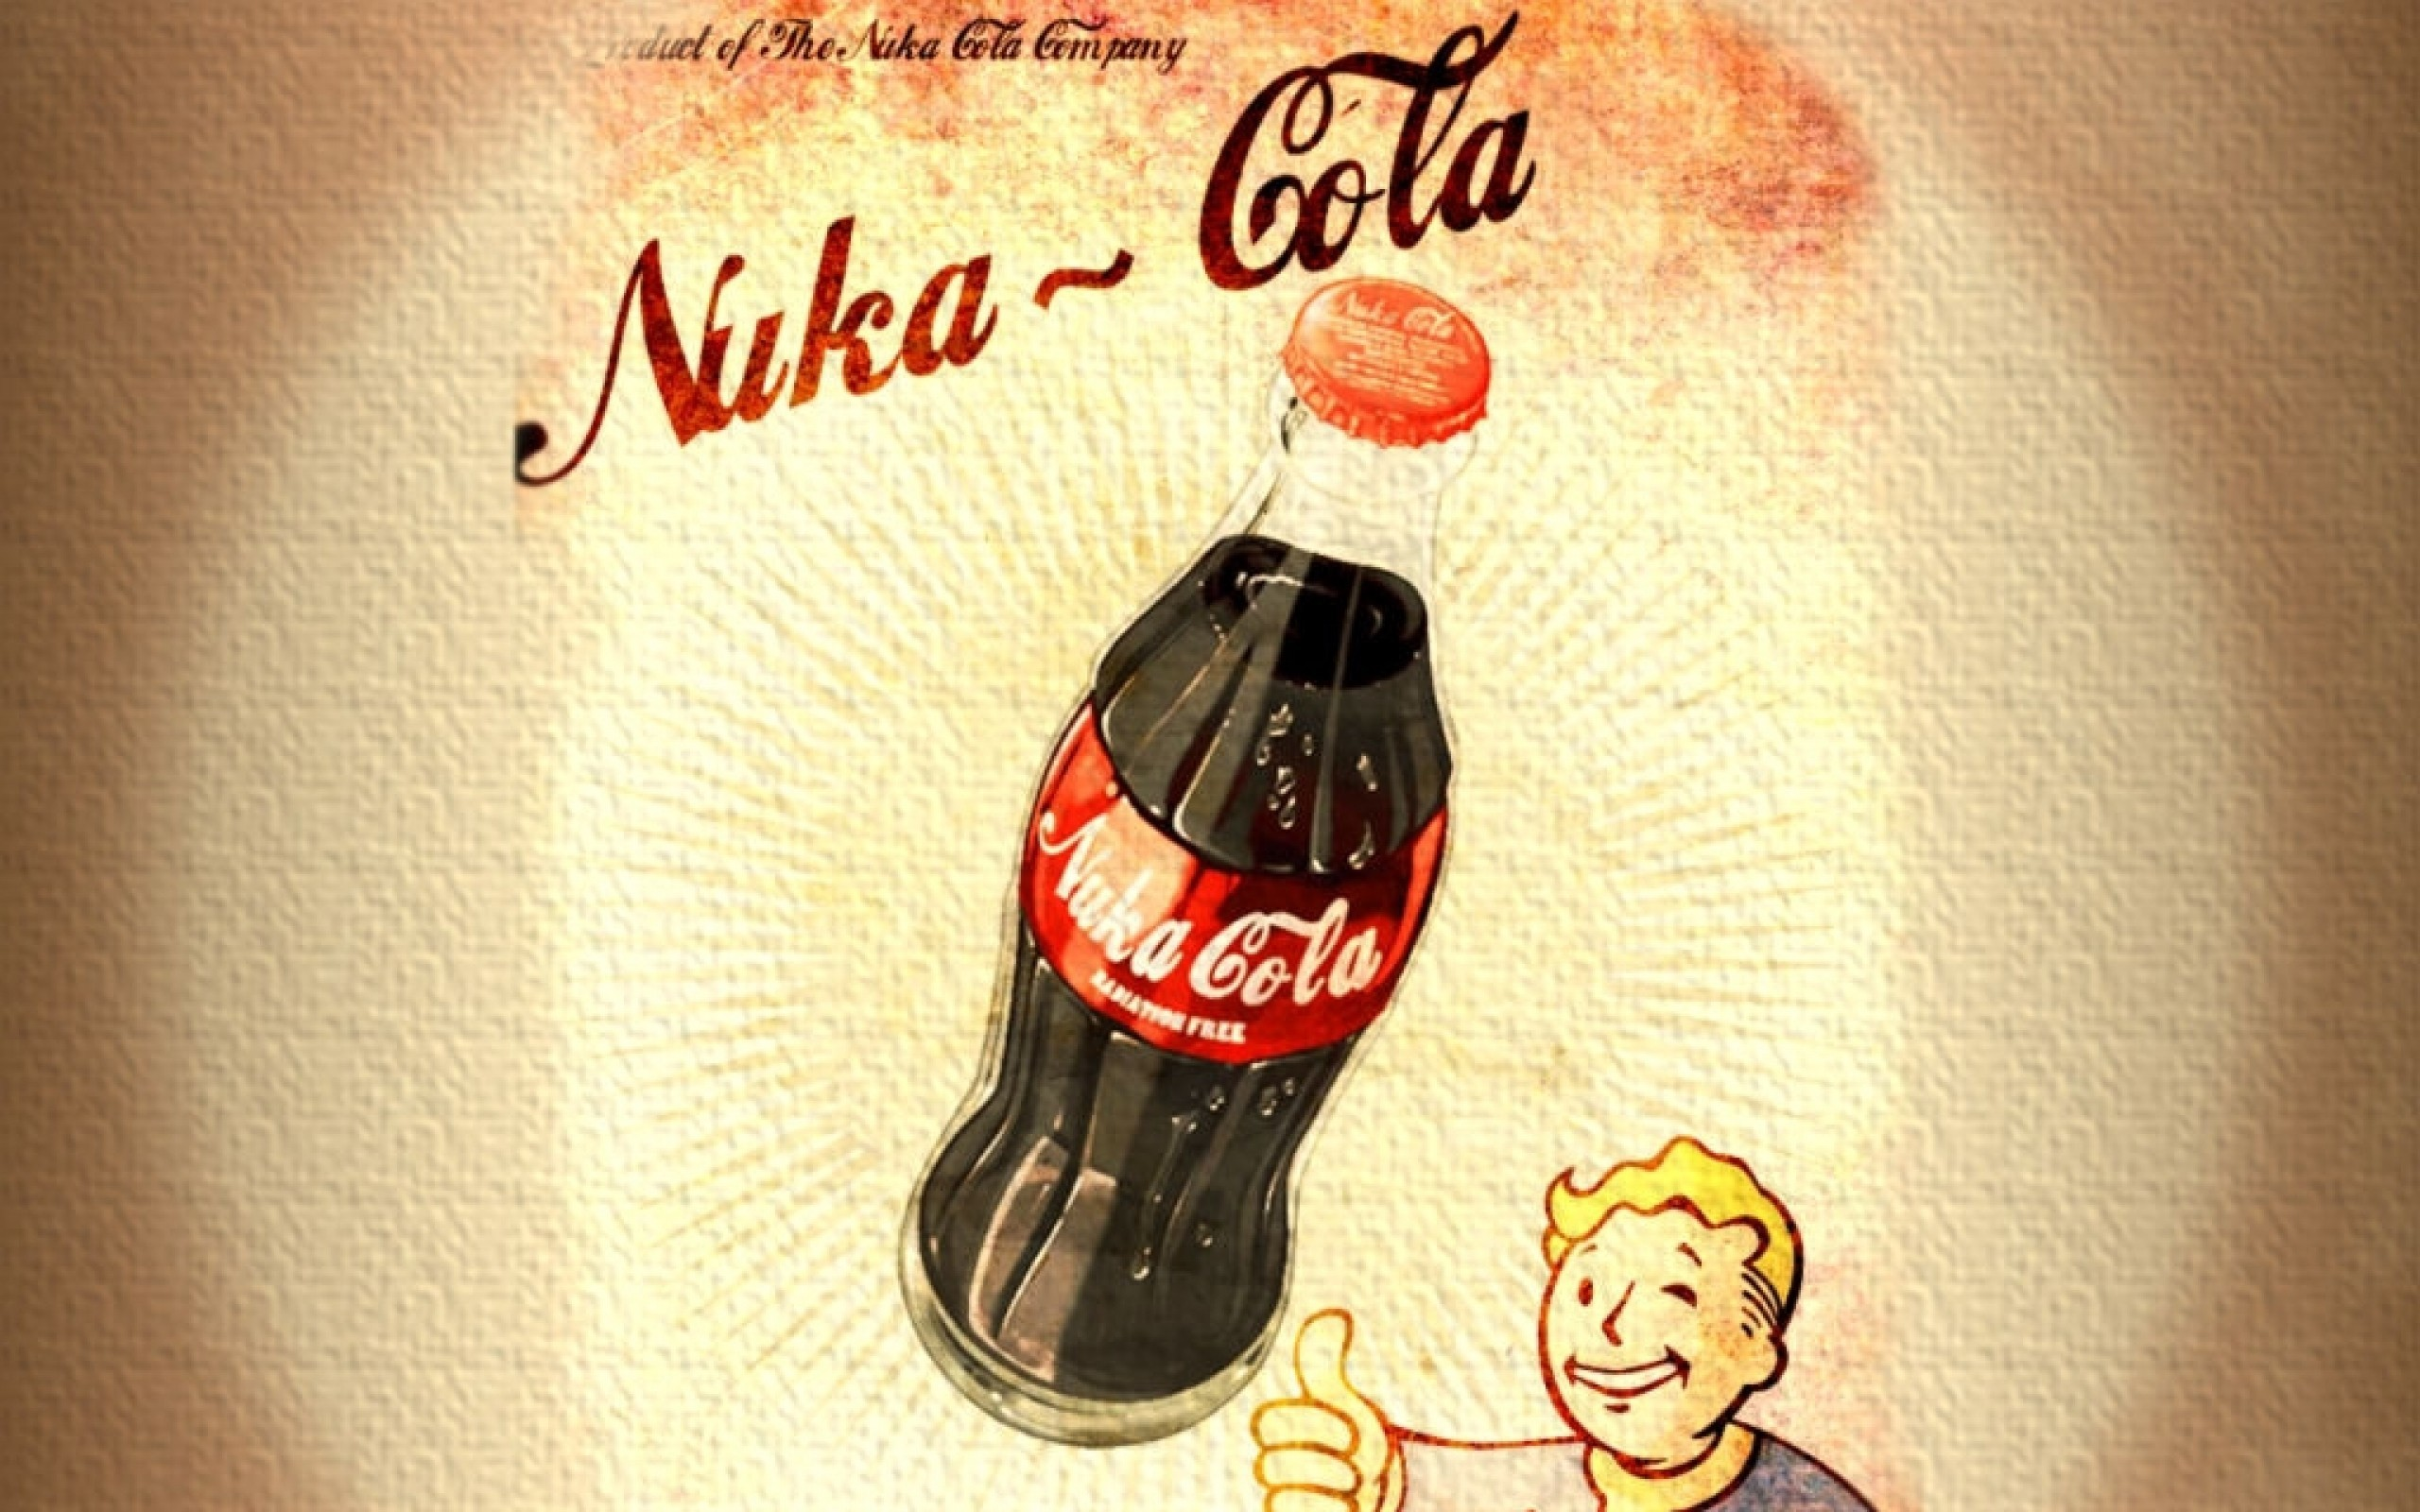 Fallout 4 Wallpaper Nuka Cola